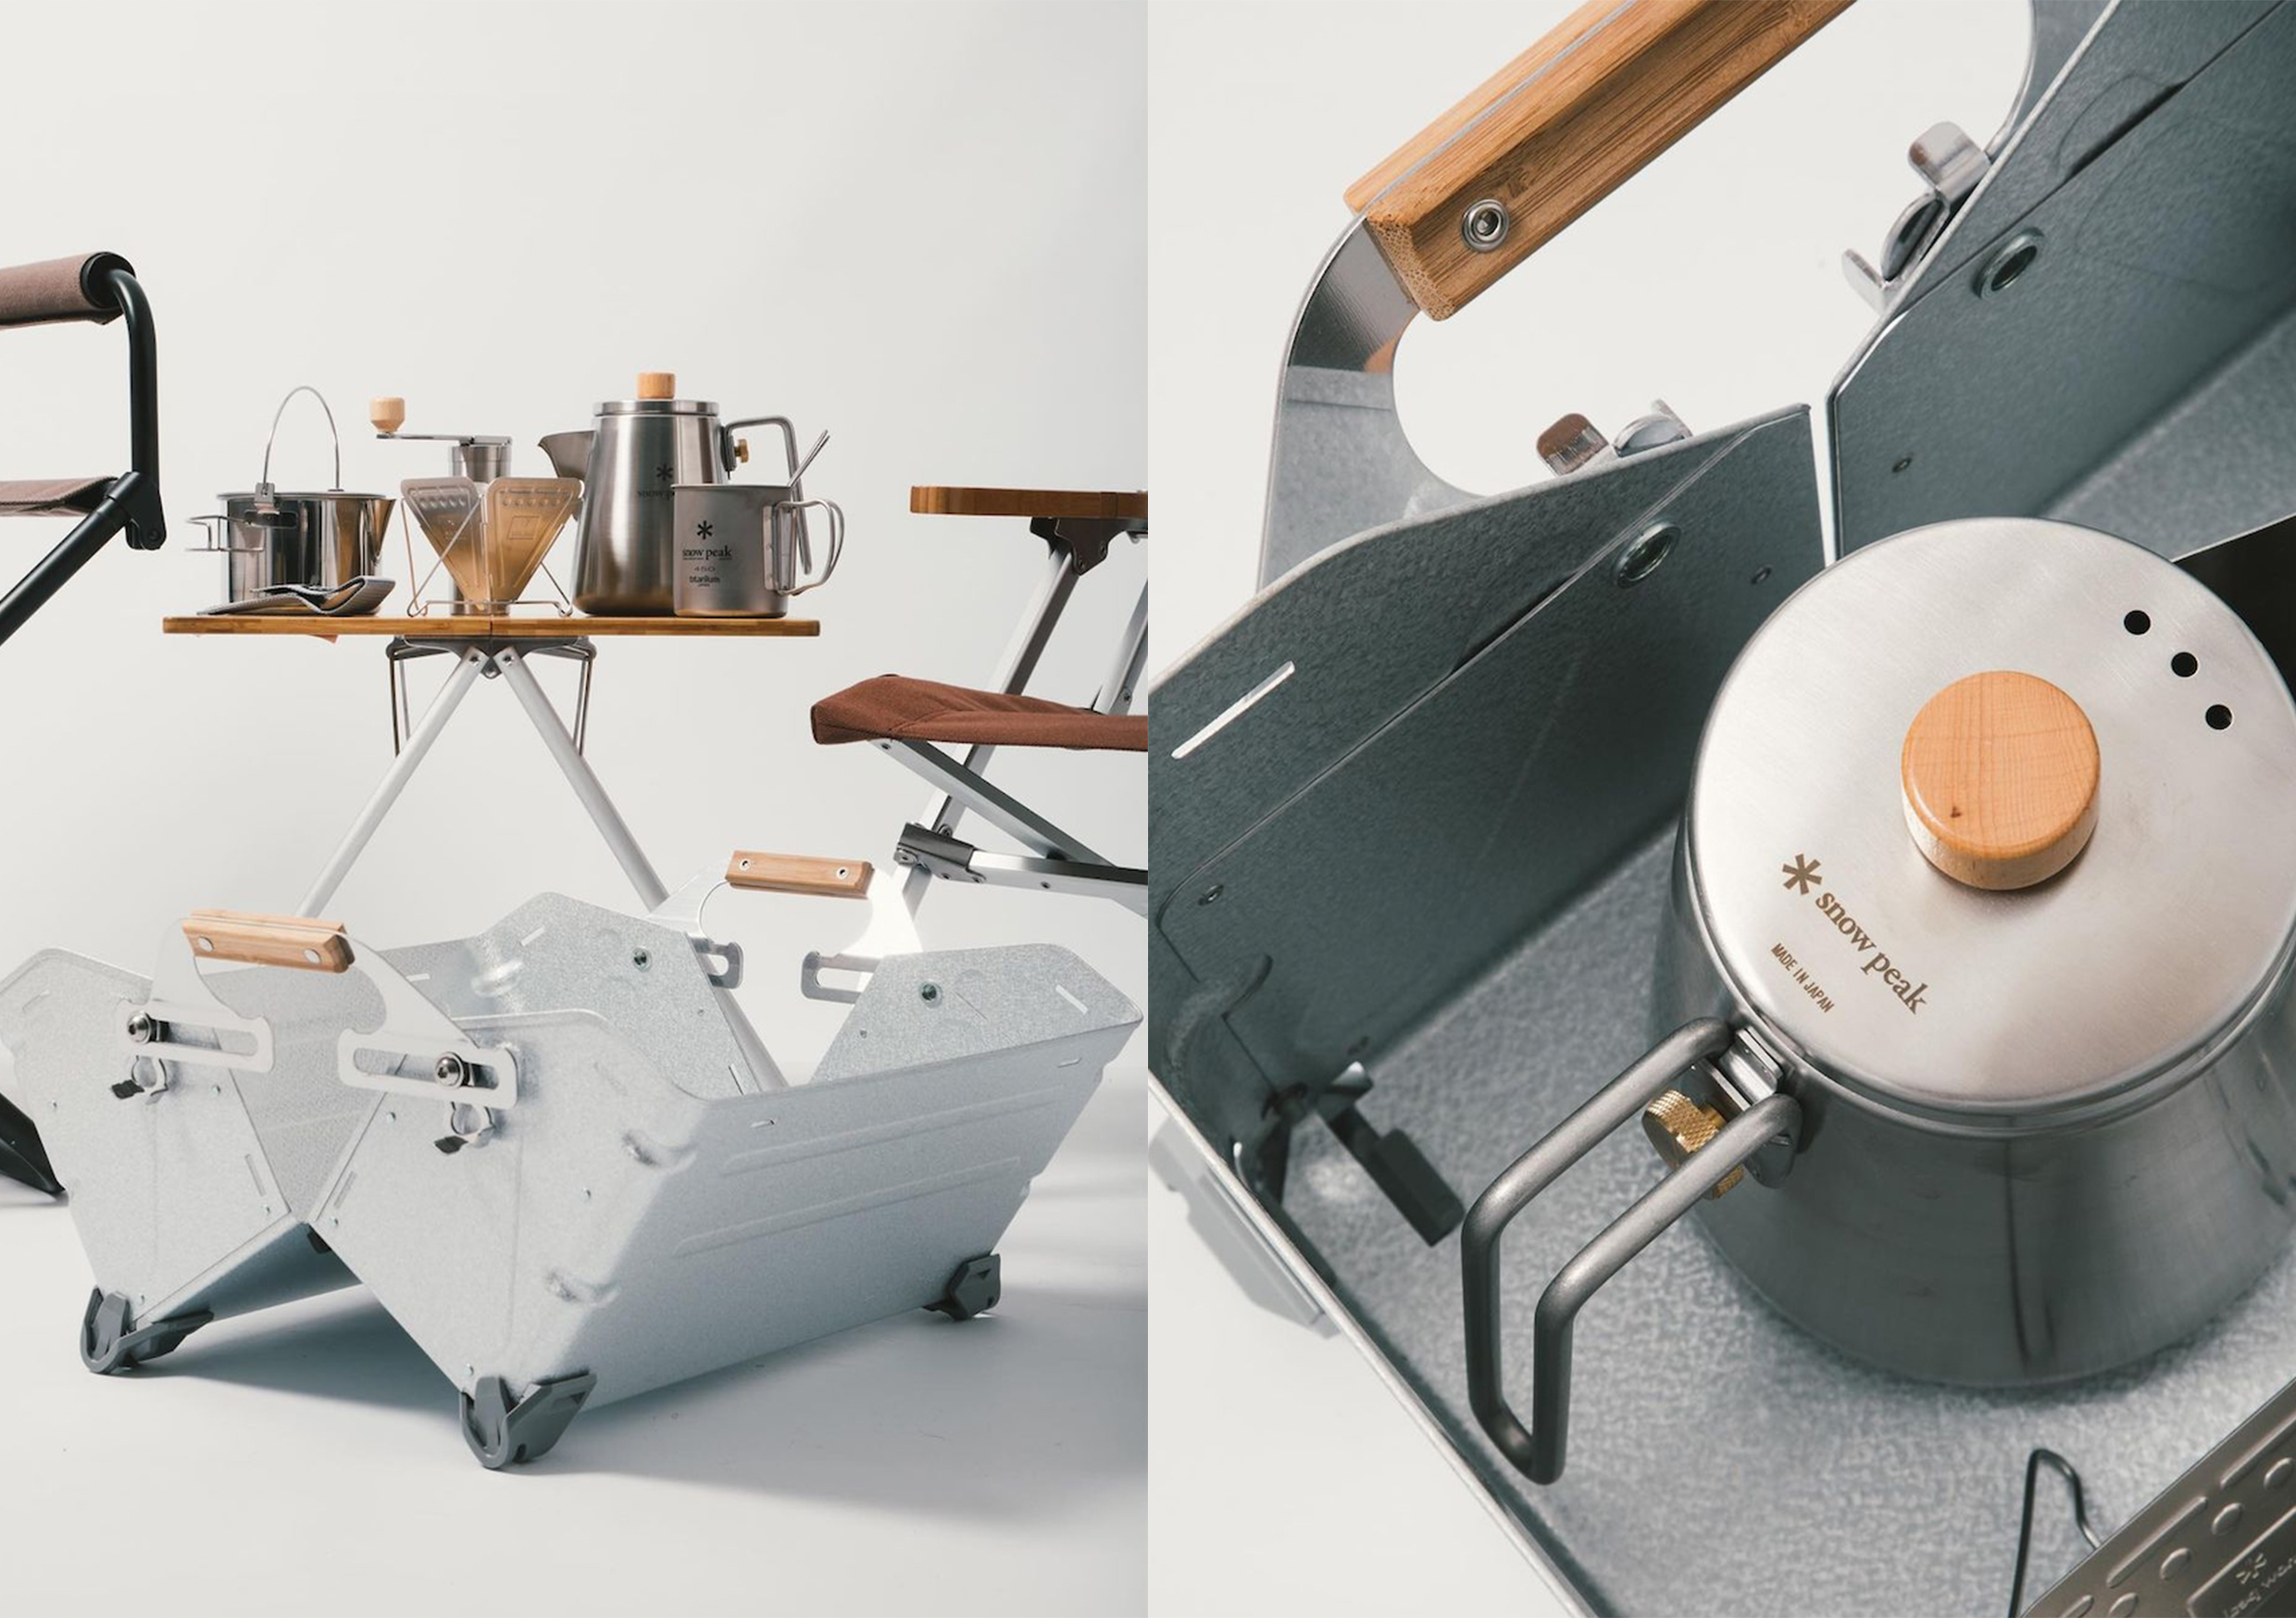 snow-peak-equipment-on-table